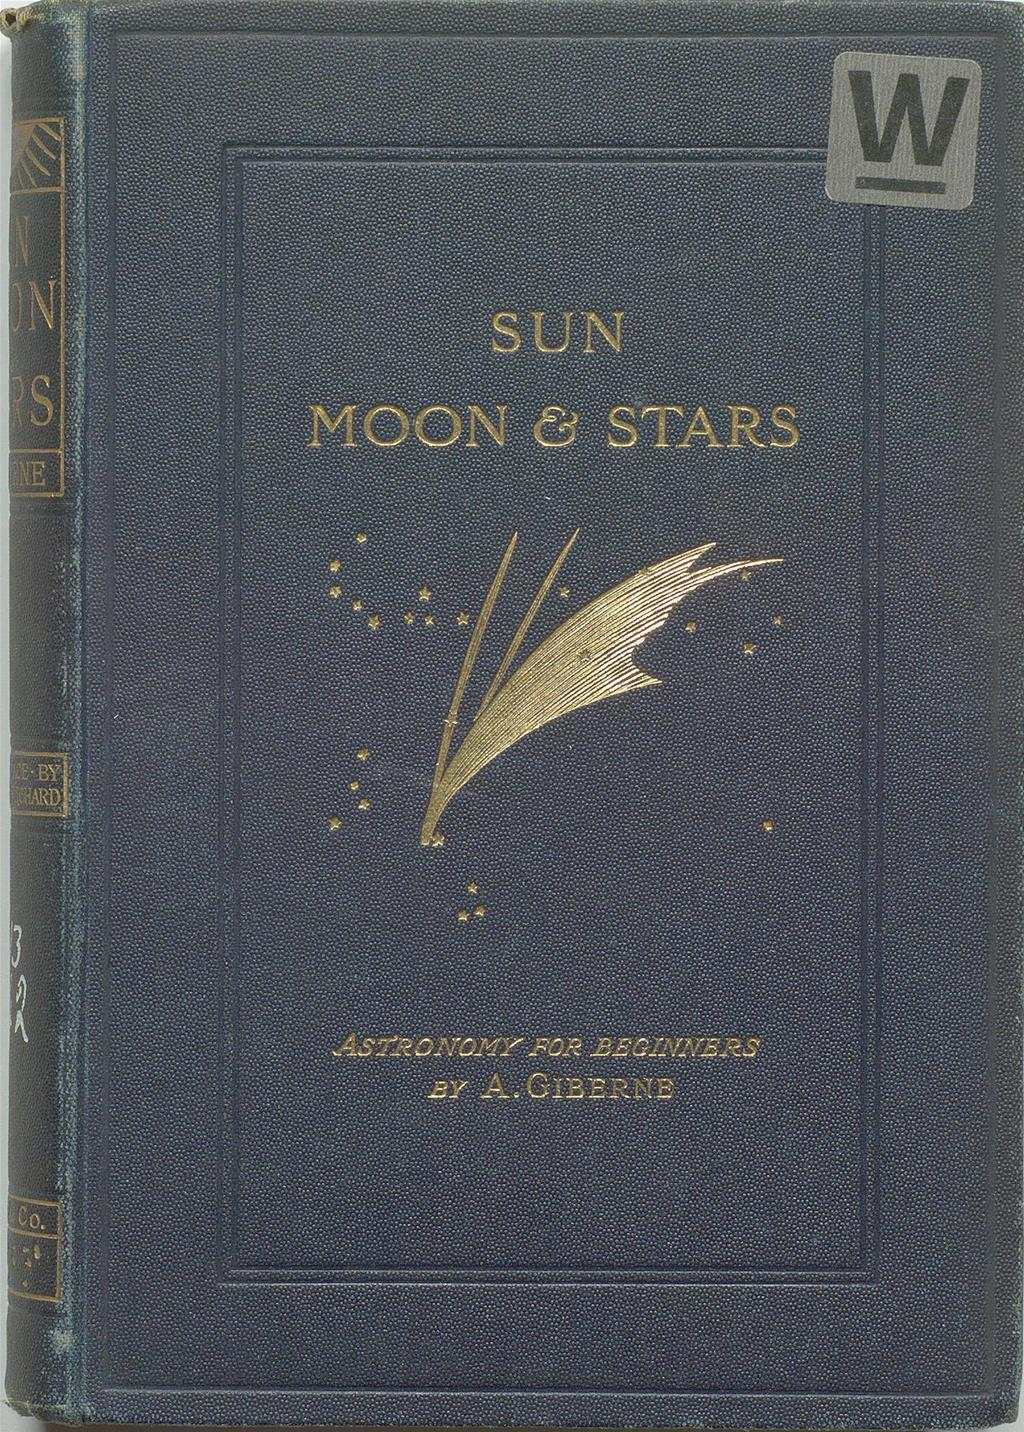 planets moons and stars book - photo #33